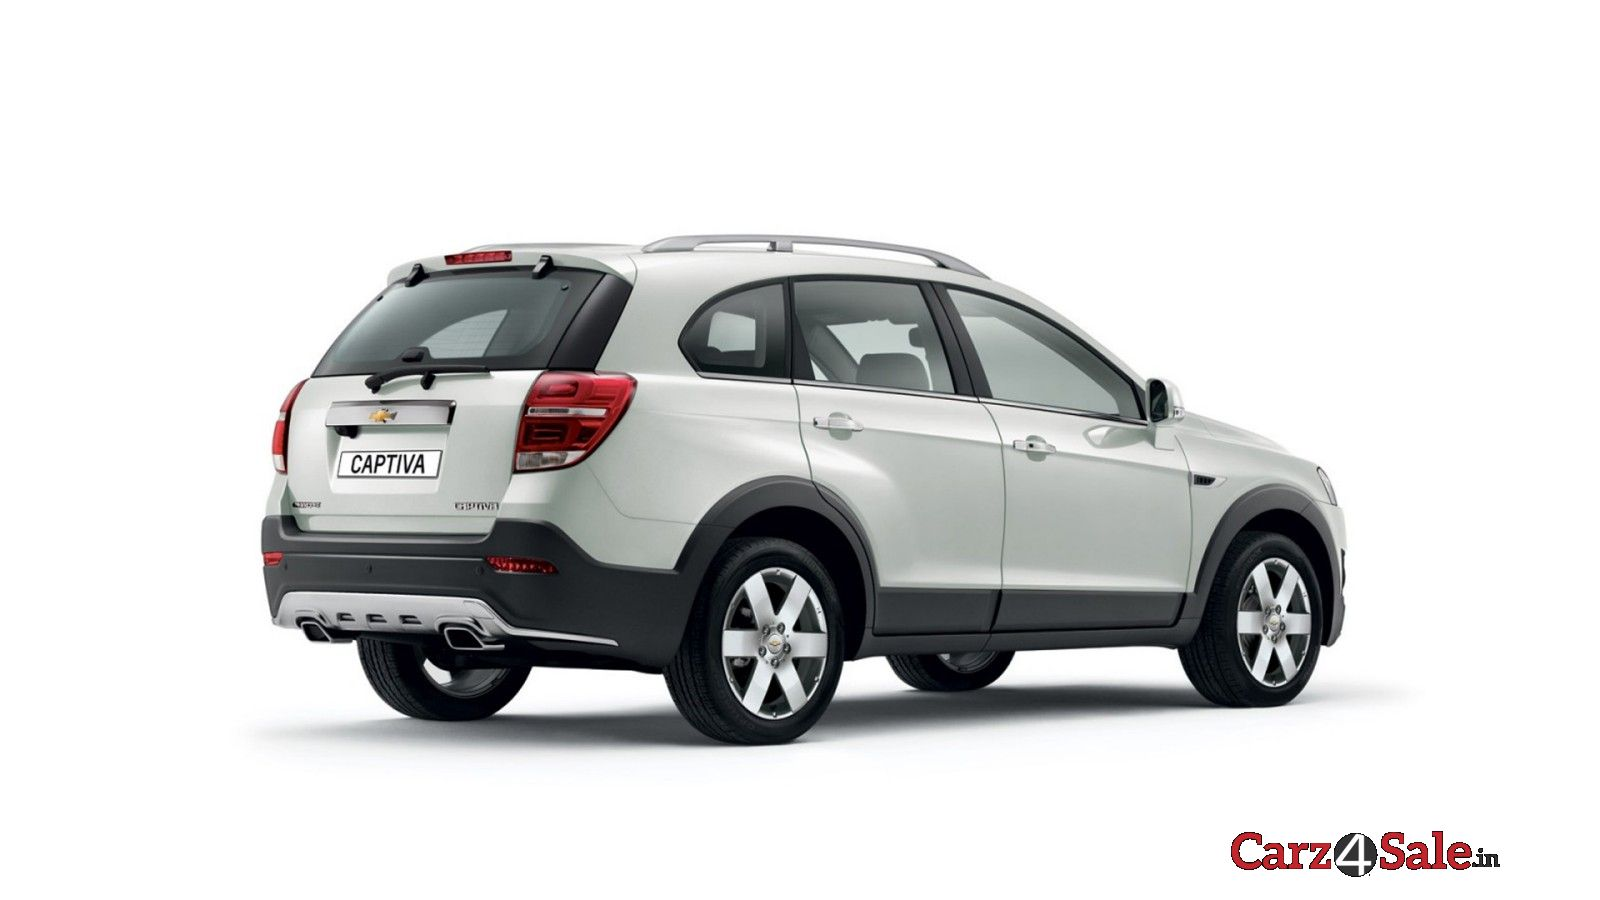 chevrolet captiva 2015 model arrives in india carz4sale. Black Bedroom Furniture Sets. Home Design Ideas